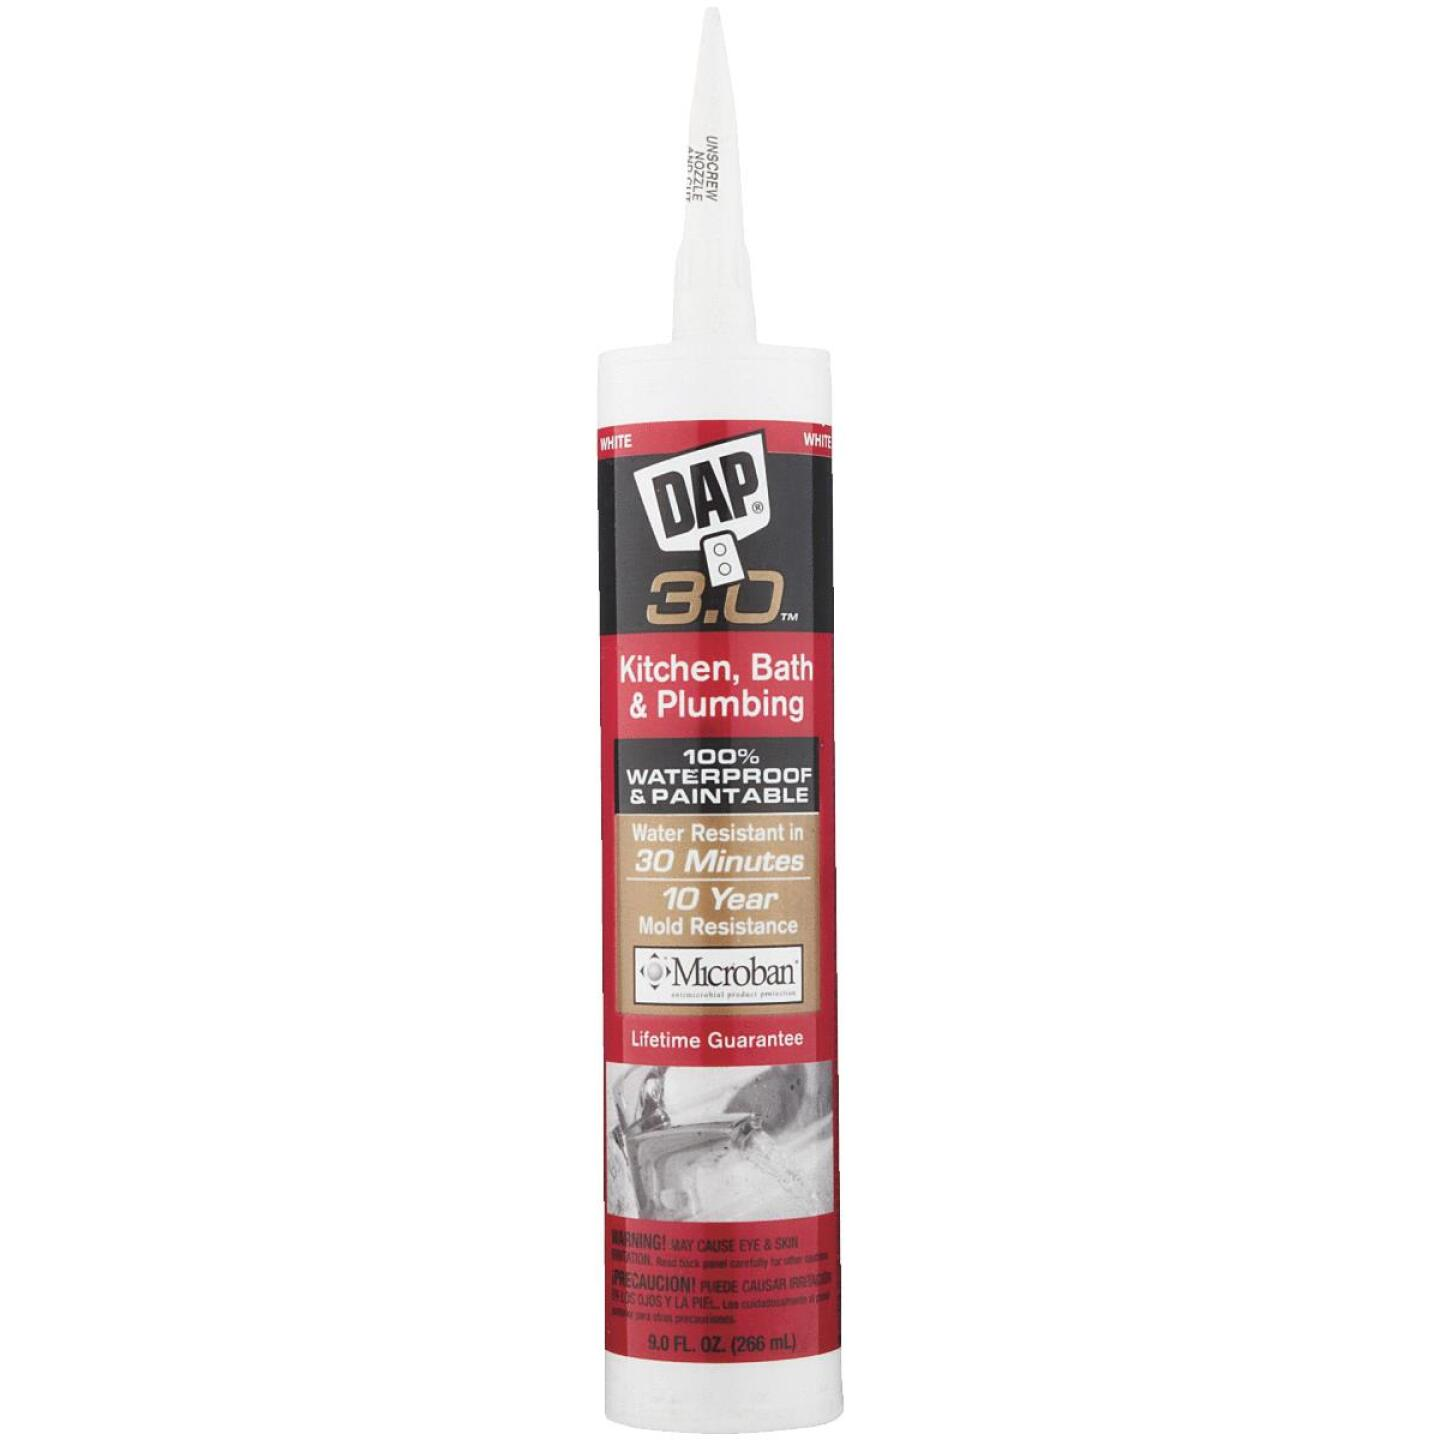 DAP 3.0 9 Oz. Gloss White Kitchen, Bath & Plumbing Caulk Image 2